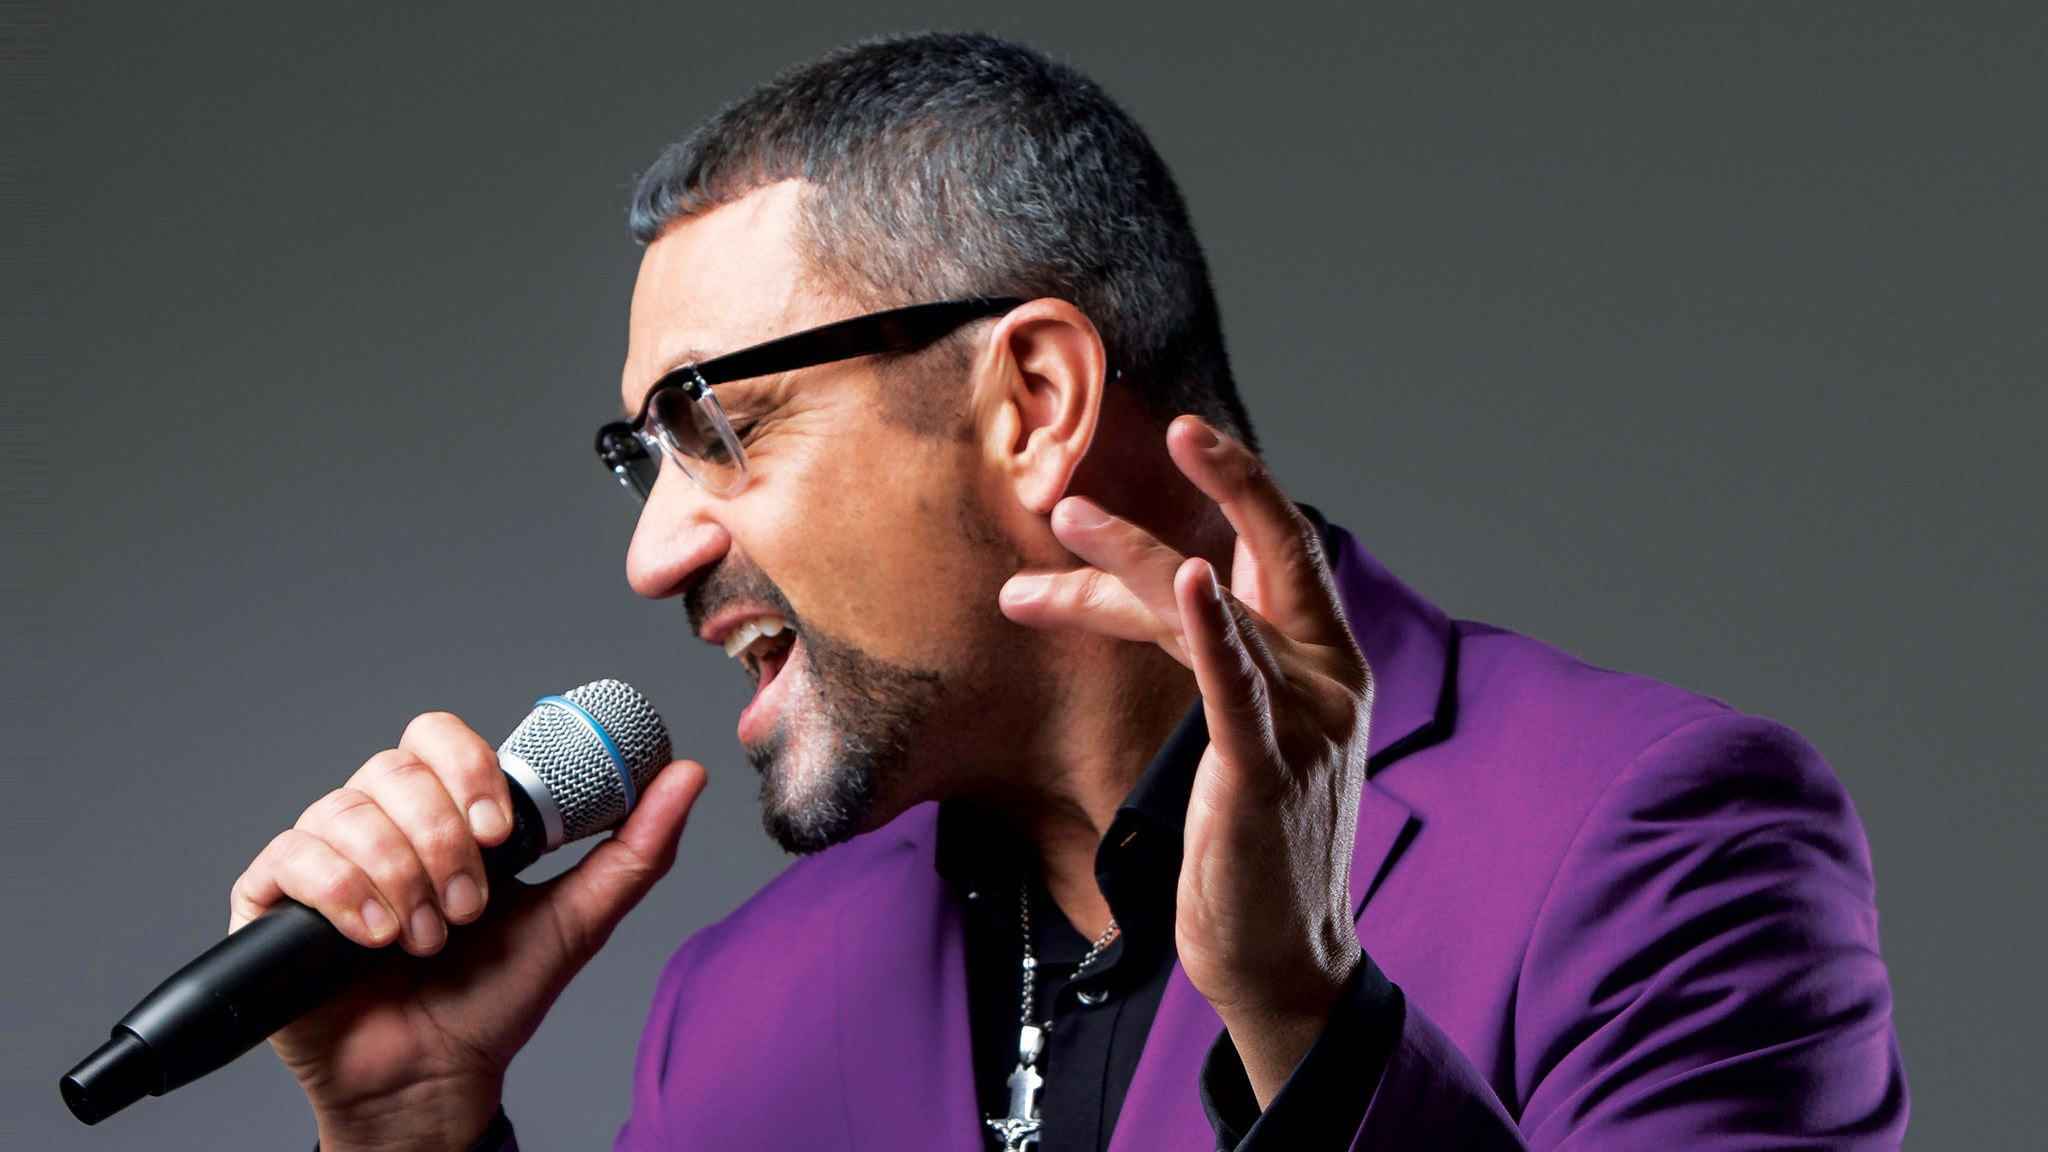 Fastlove – A Tribute to George Michael